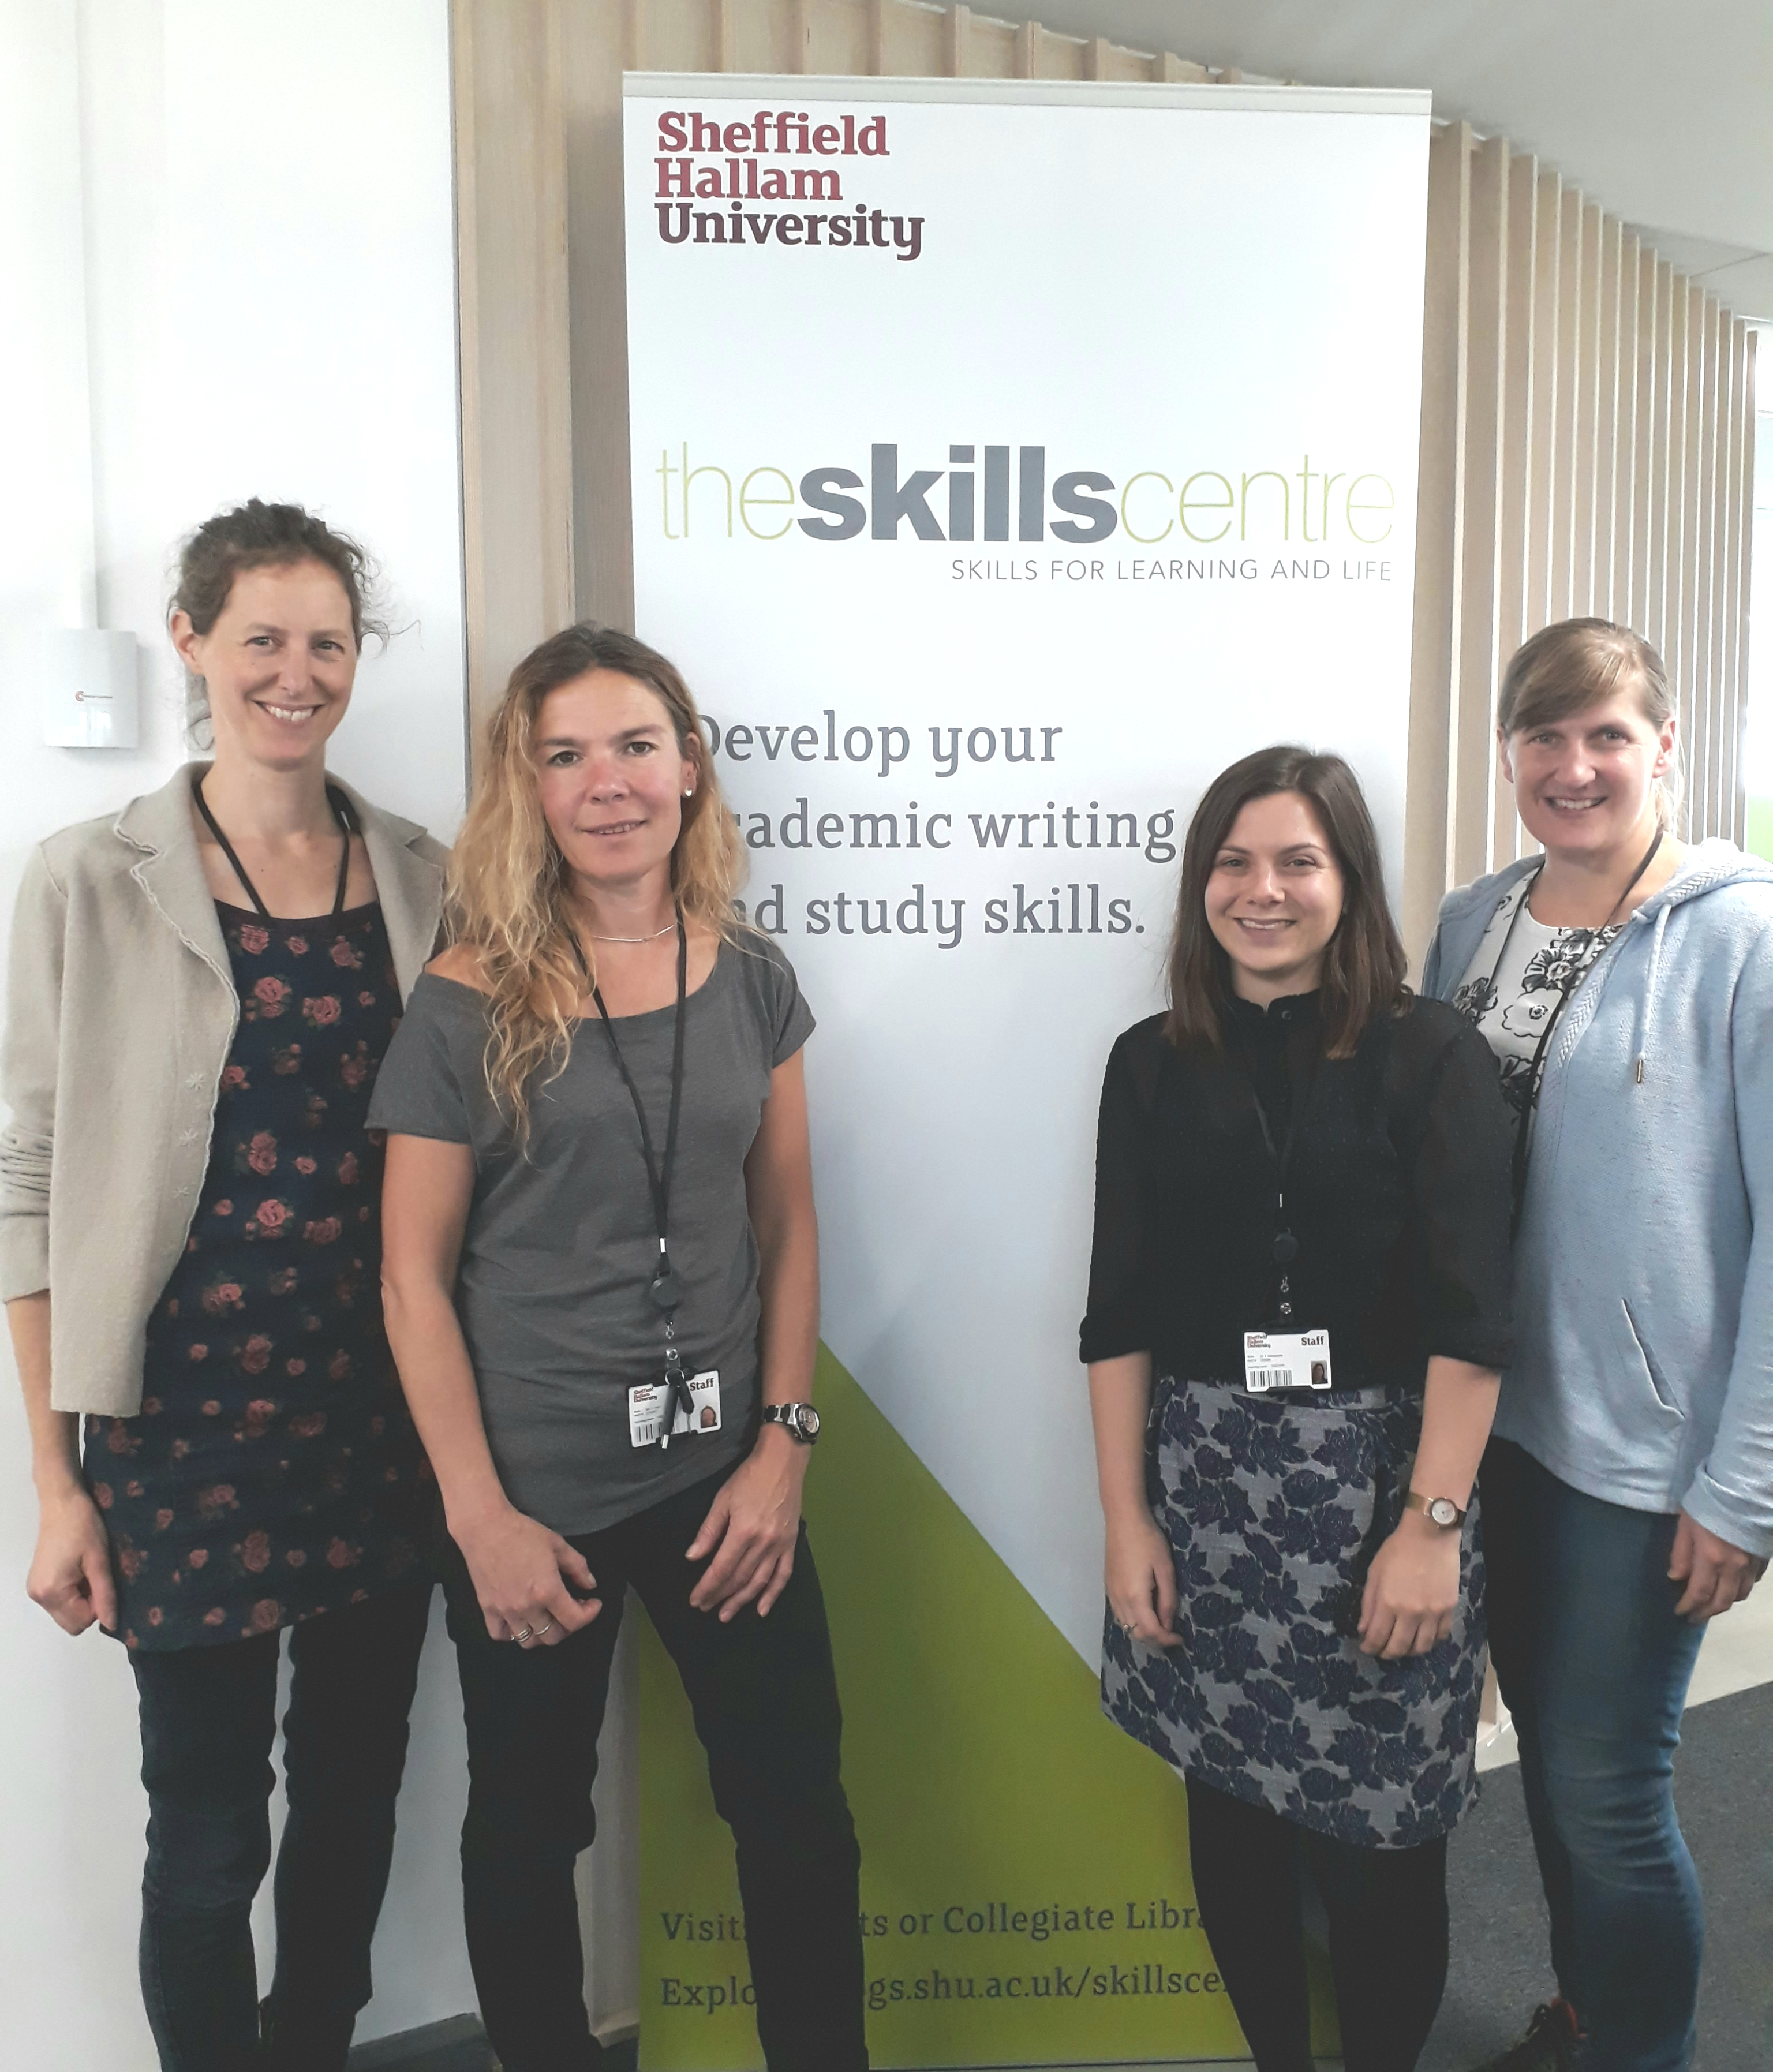 Hello and welcome to the Skills Centre at Sheffield Hallam University!